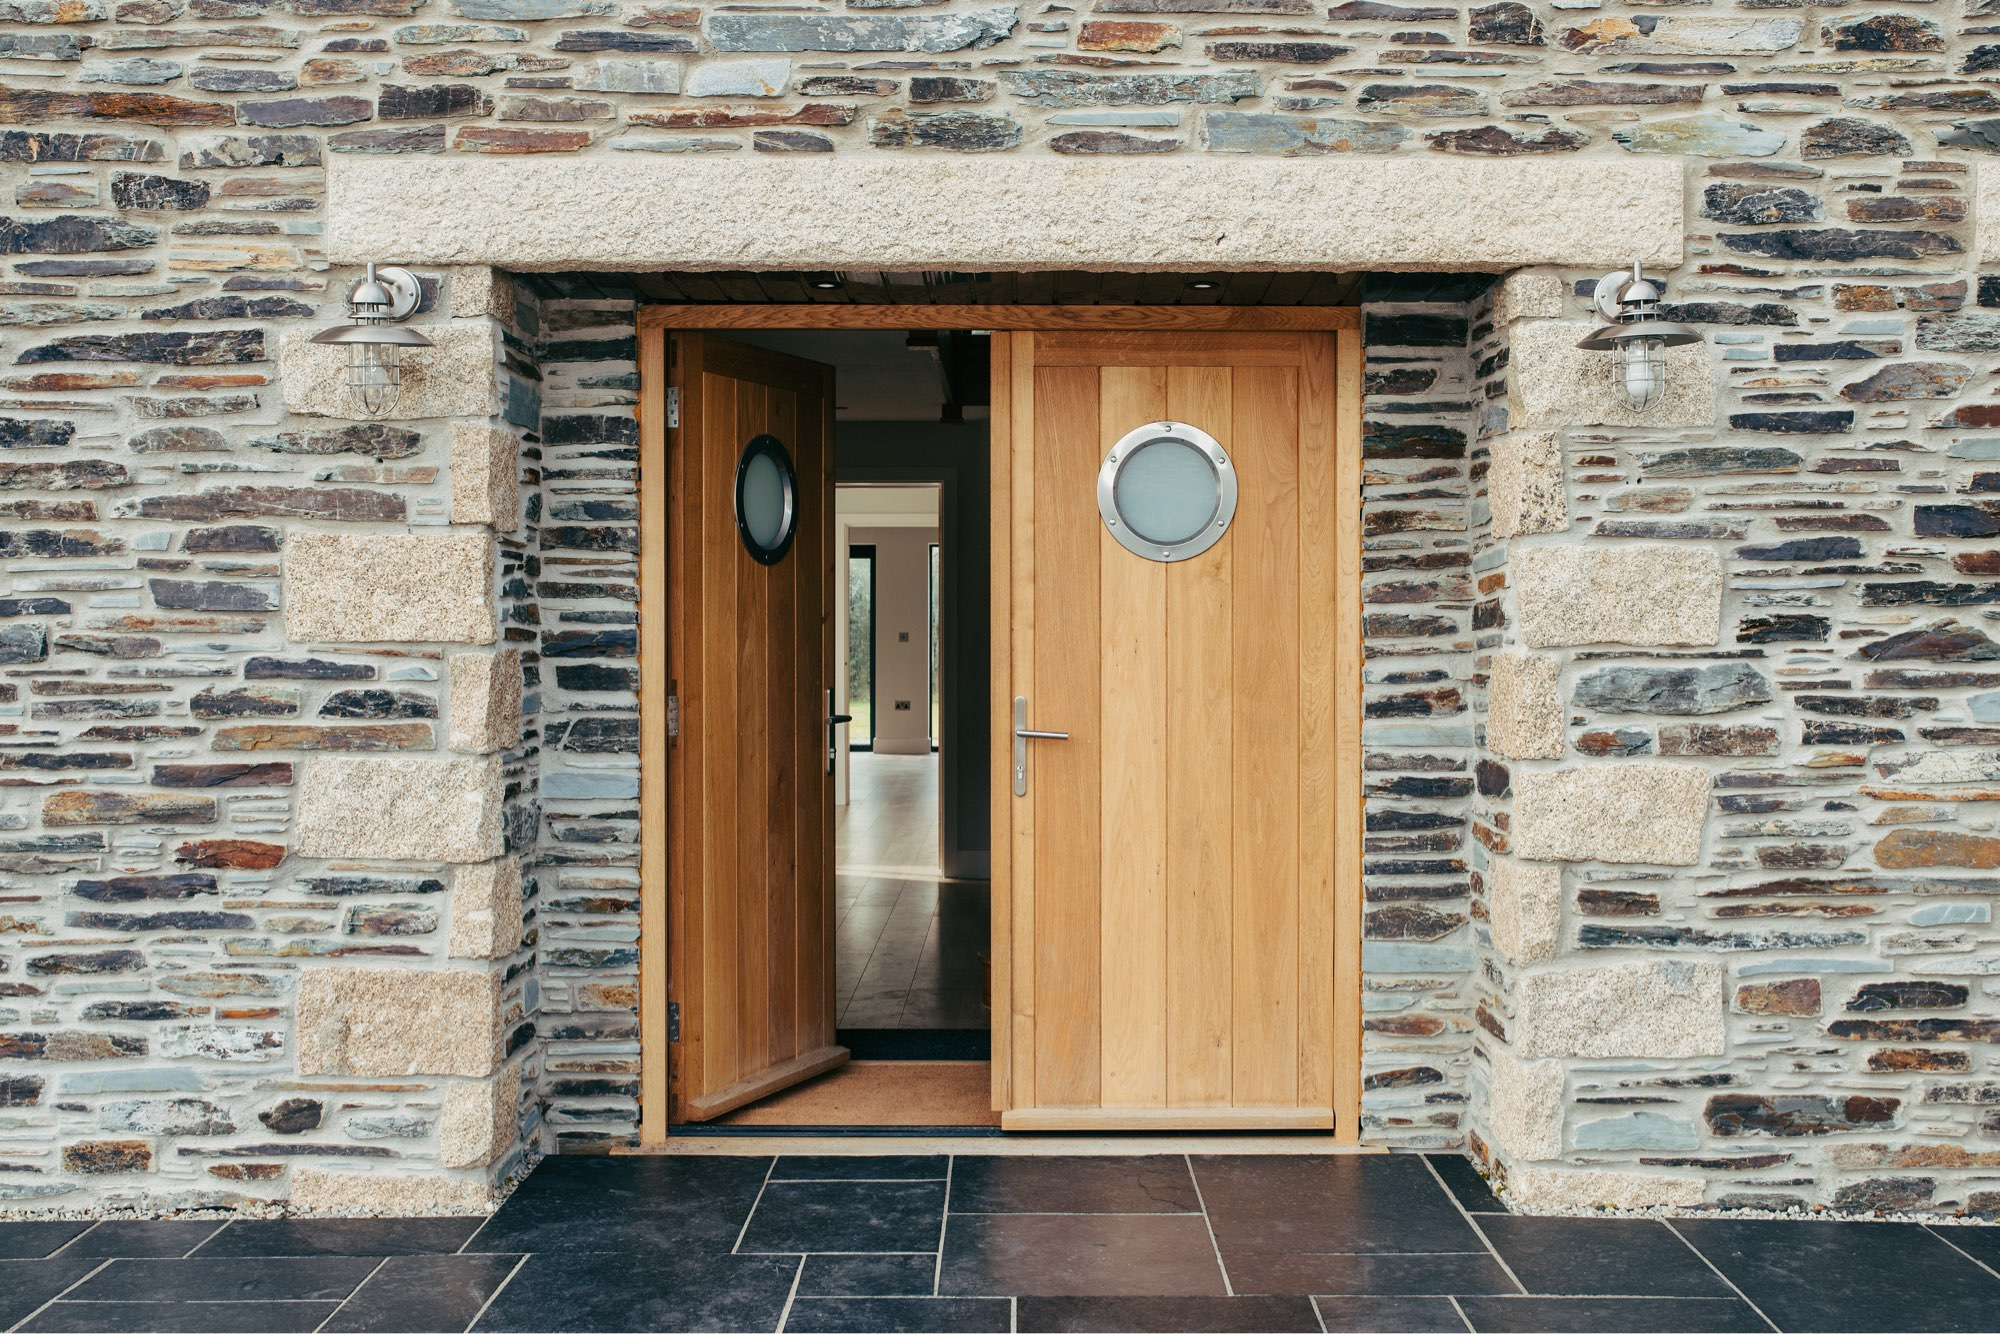 bespoke timber double front doors with portholes